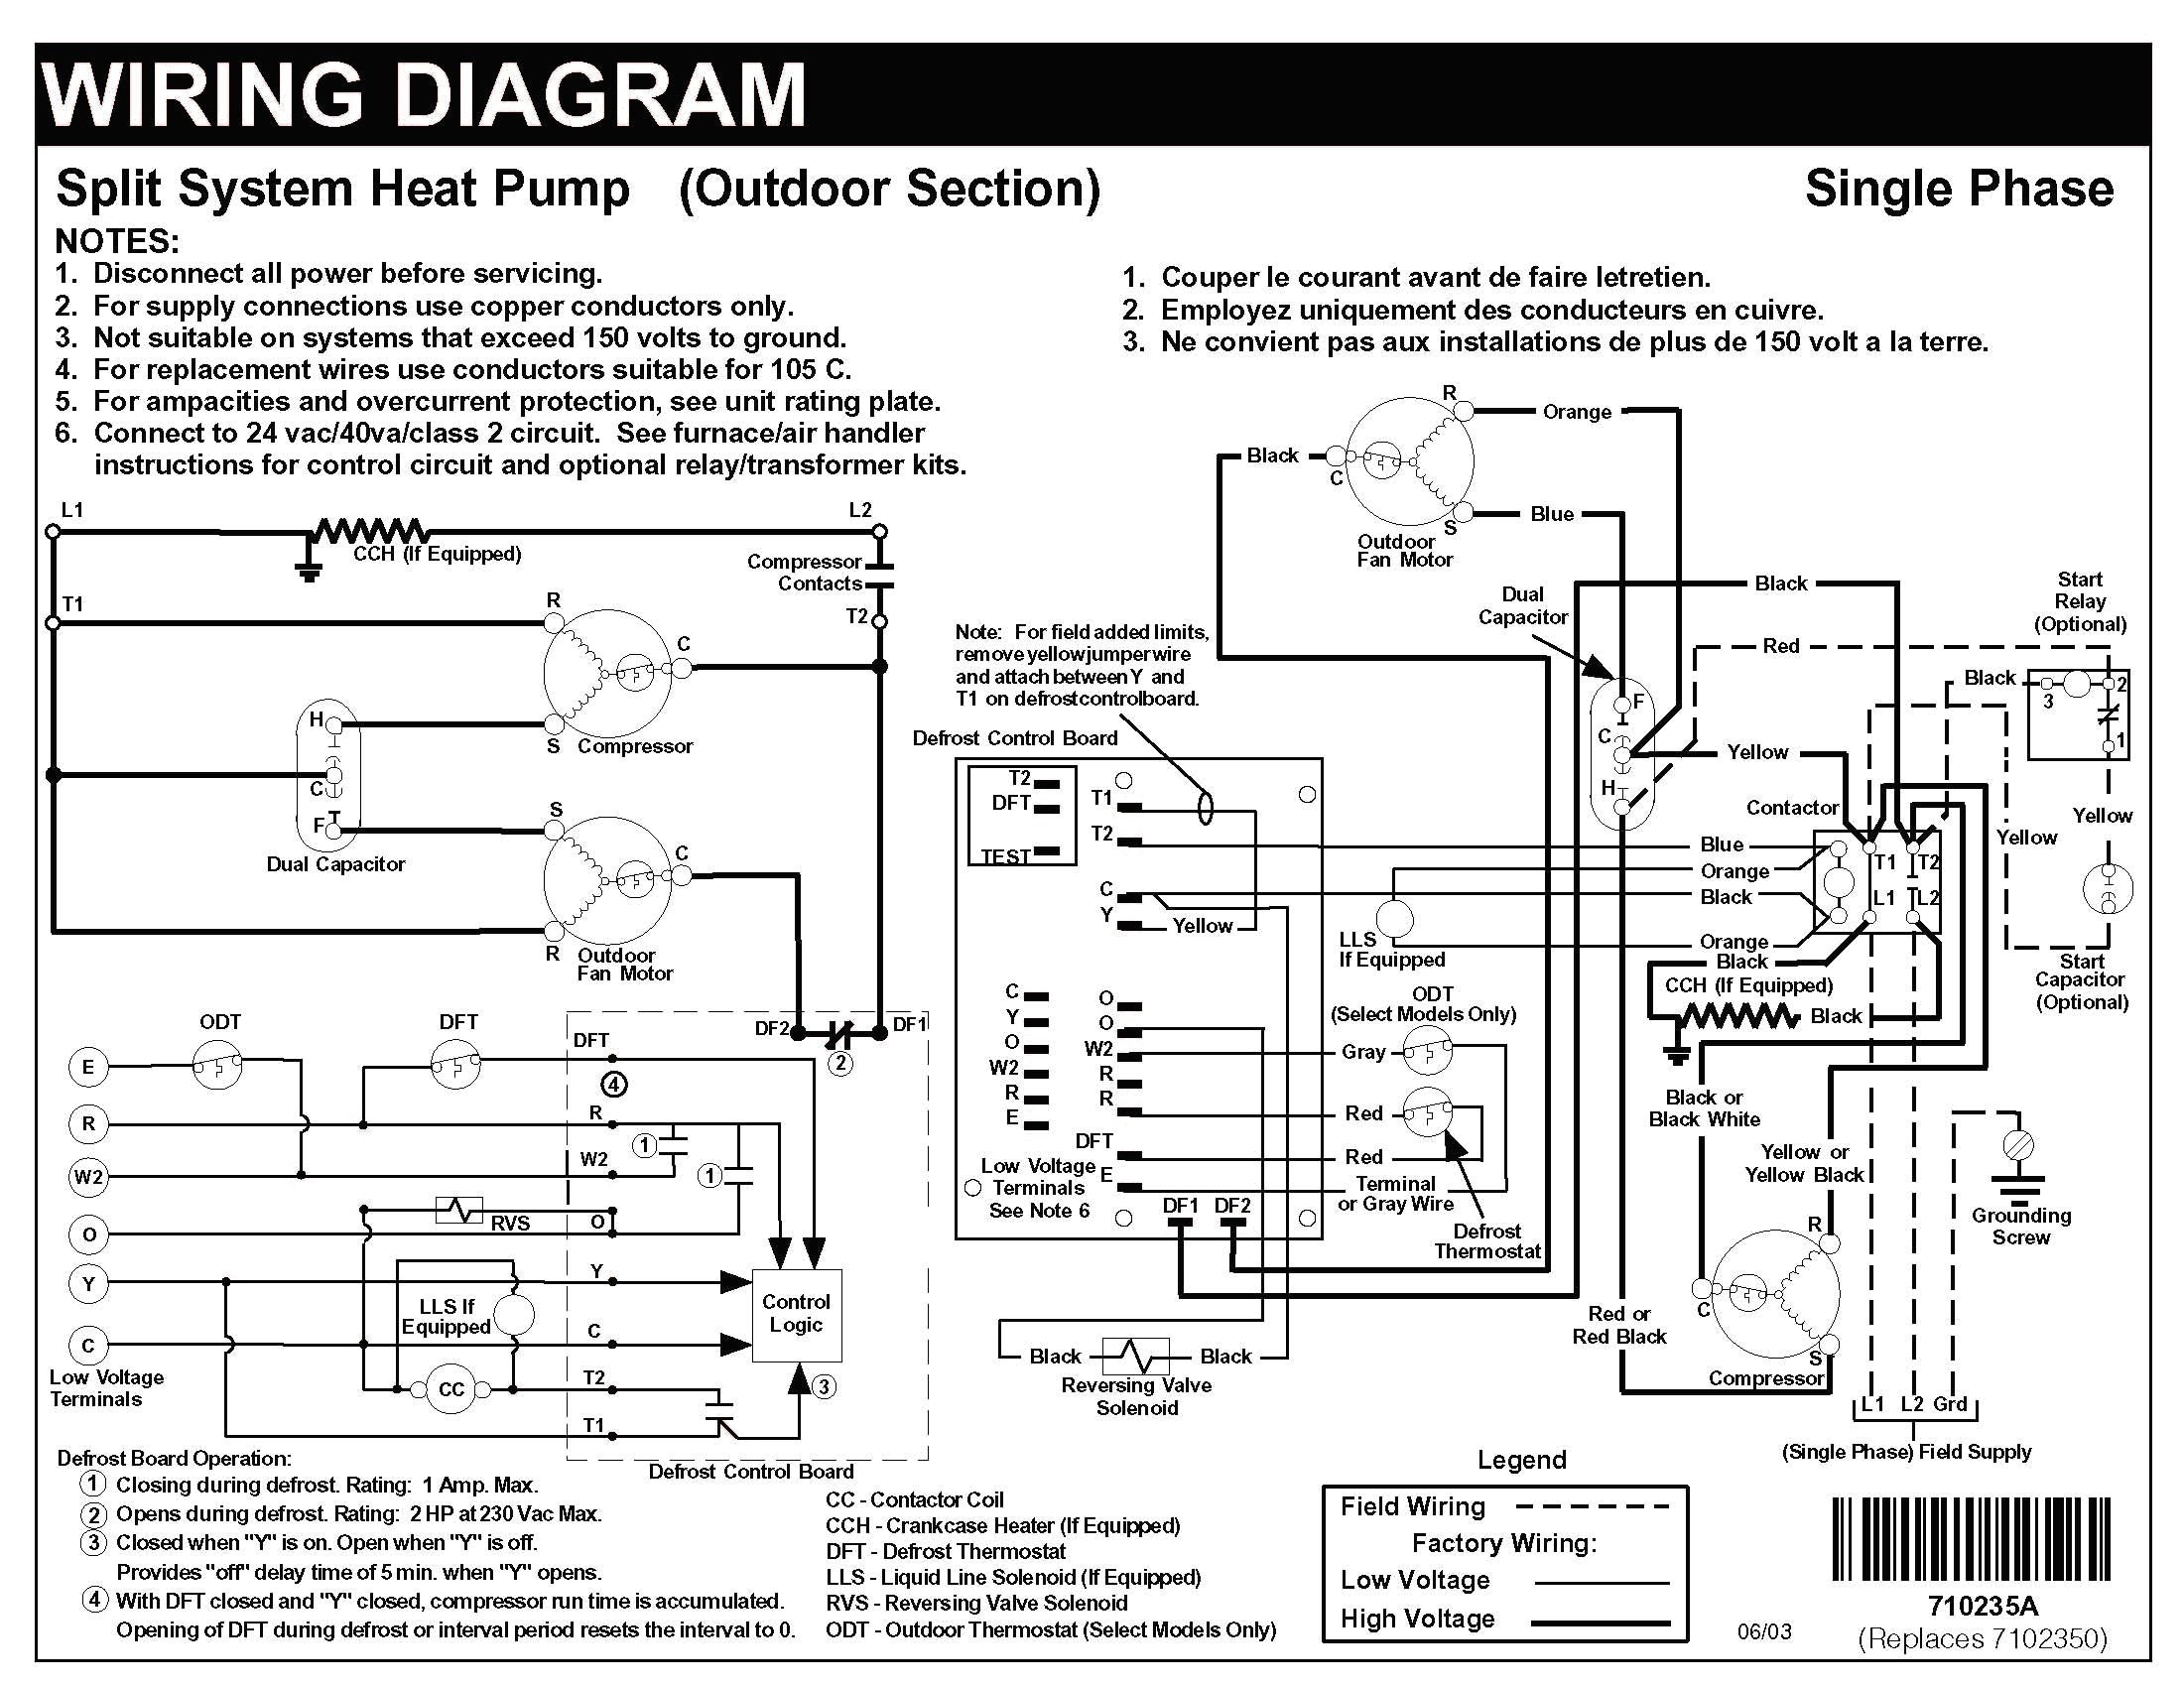 pool heat pump wiring diagram Collection-Nest Thermostat Wiring Diagram Heat Pump Elegant Famous Carrier Heat Pump Wiring Diagram Gallery Electrical Nest Thermostat Wiring Diagram Heat Pump In 16-p